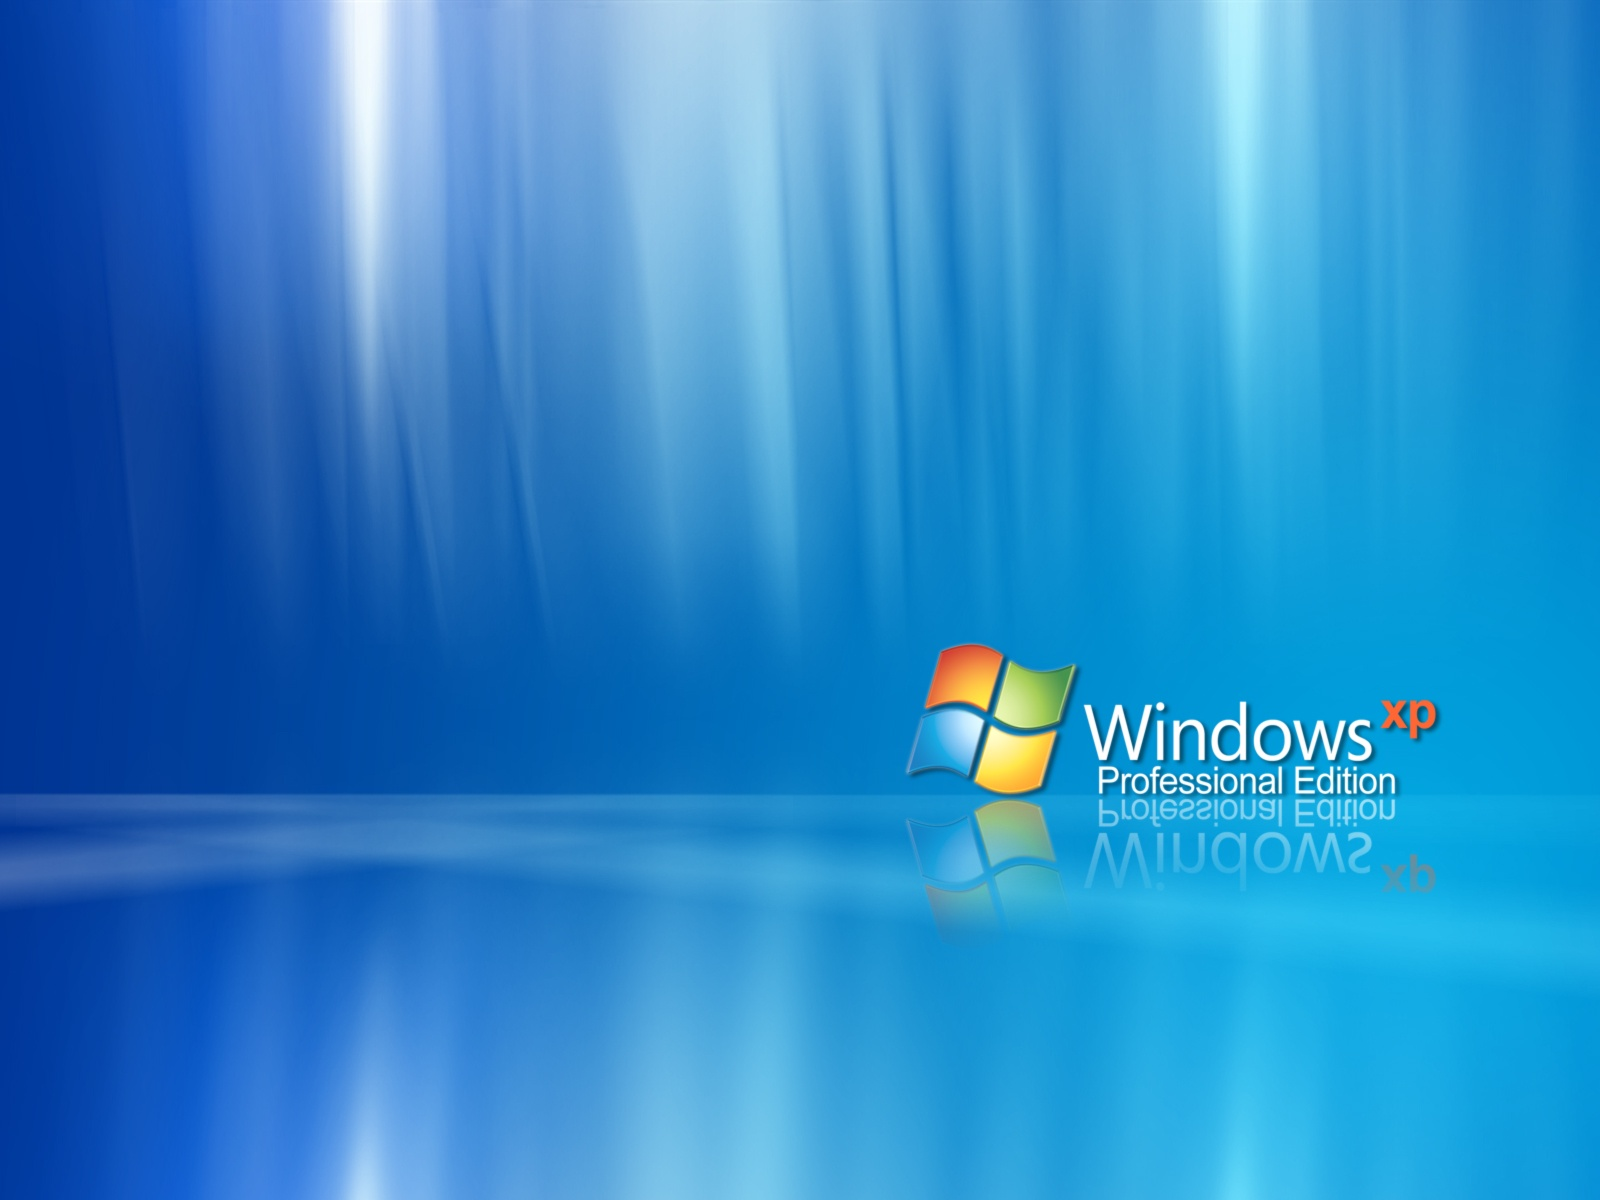 windows xp wallpaper 1